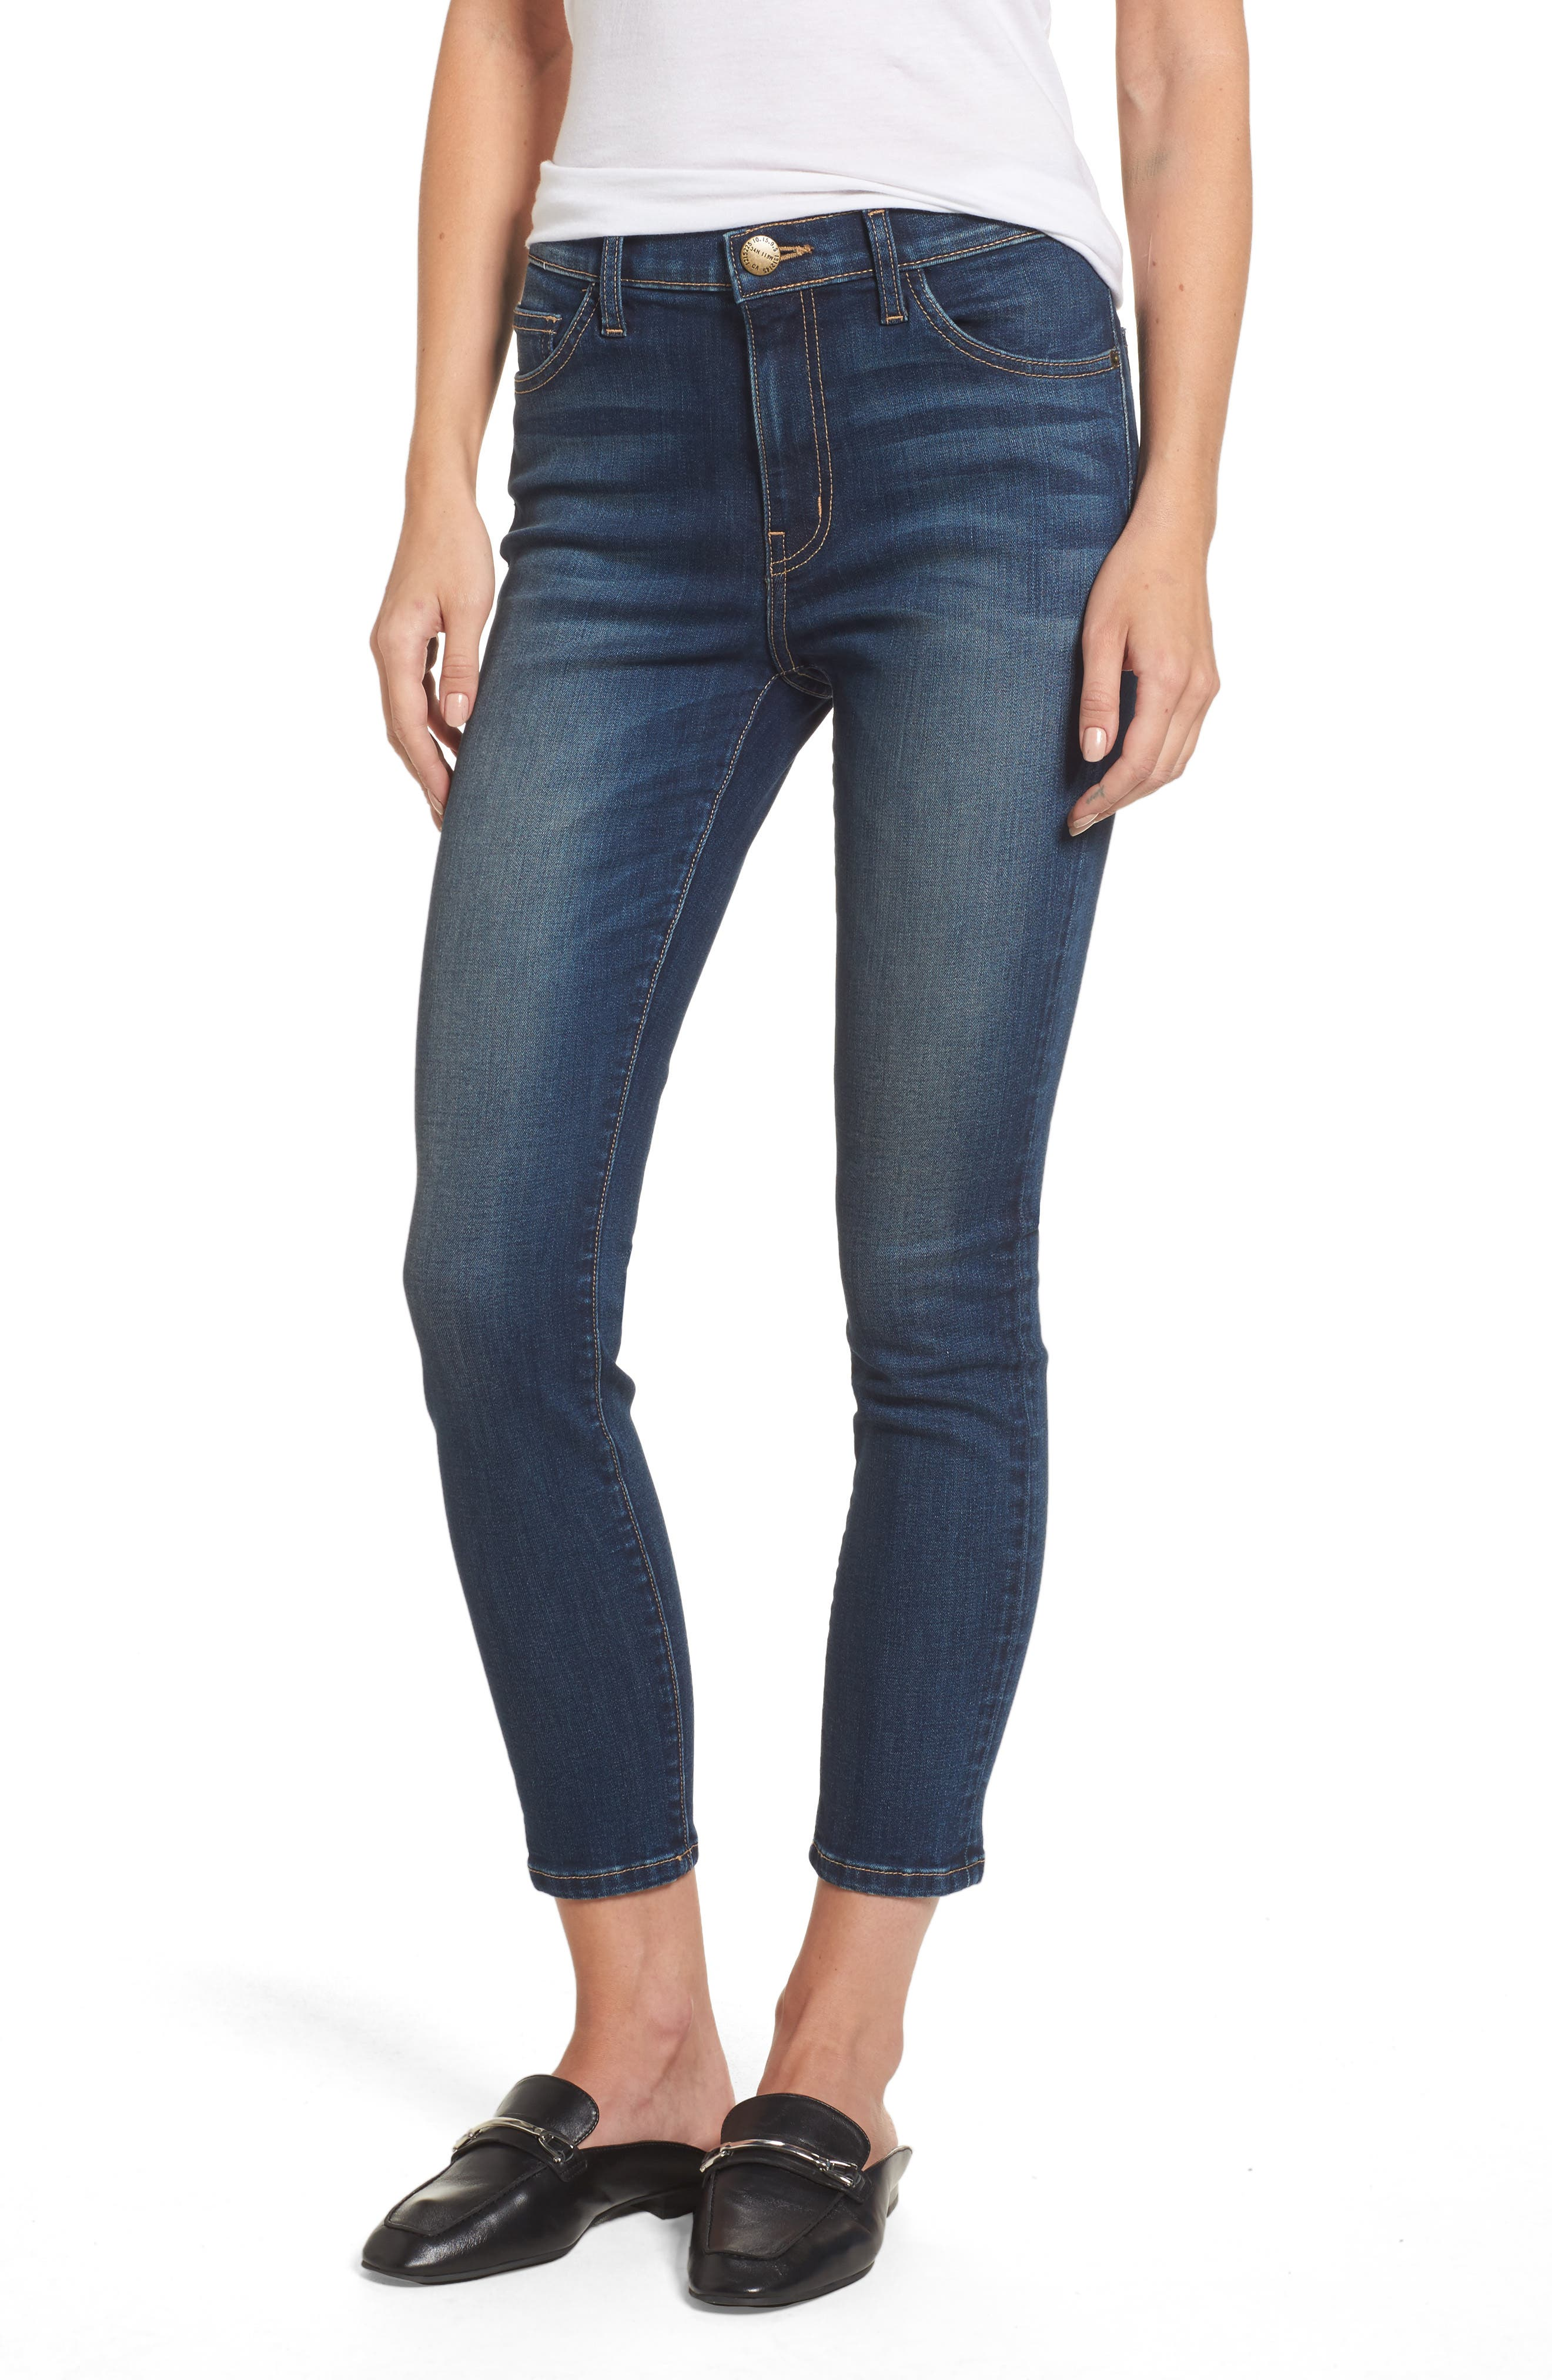 Alternate Image 1 Selected - Current/Elliott The Stiletto High Waist Ankle Skinny Jeans (Love Found)